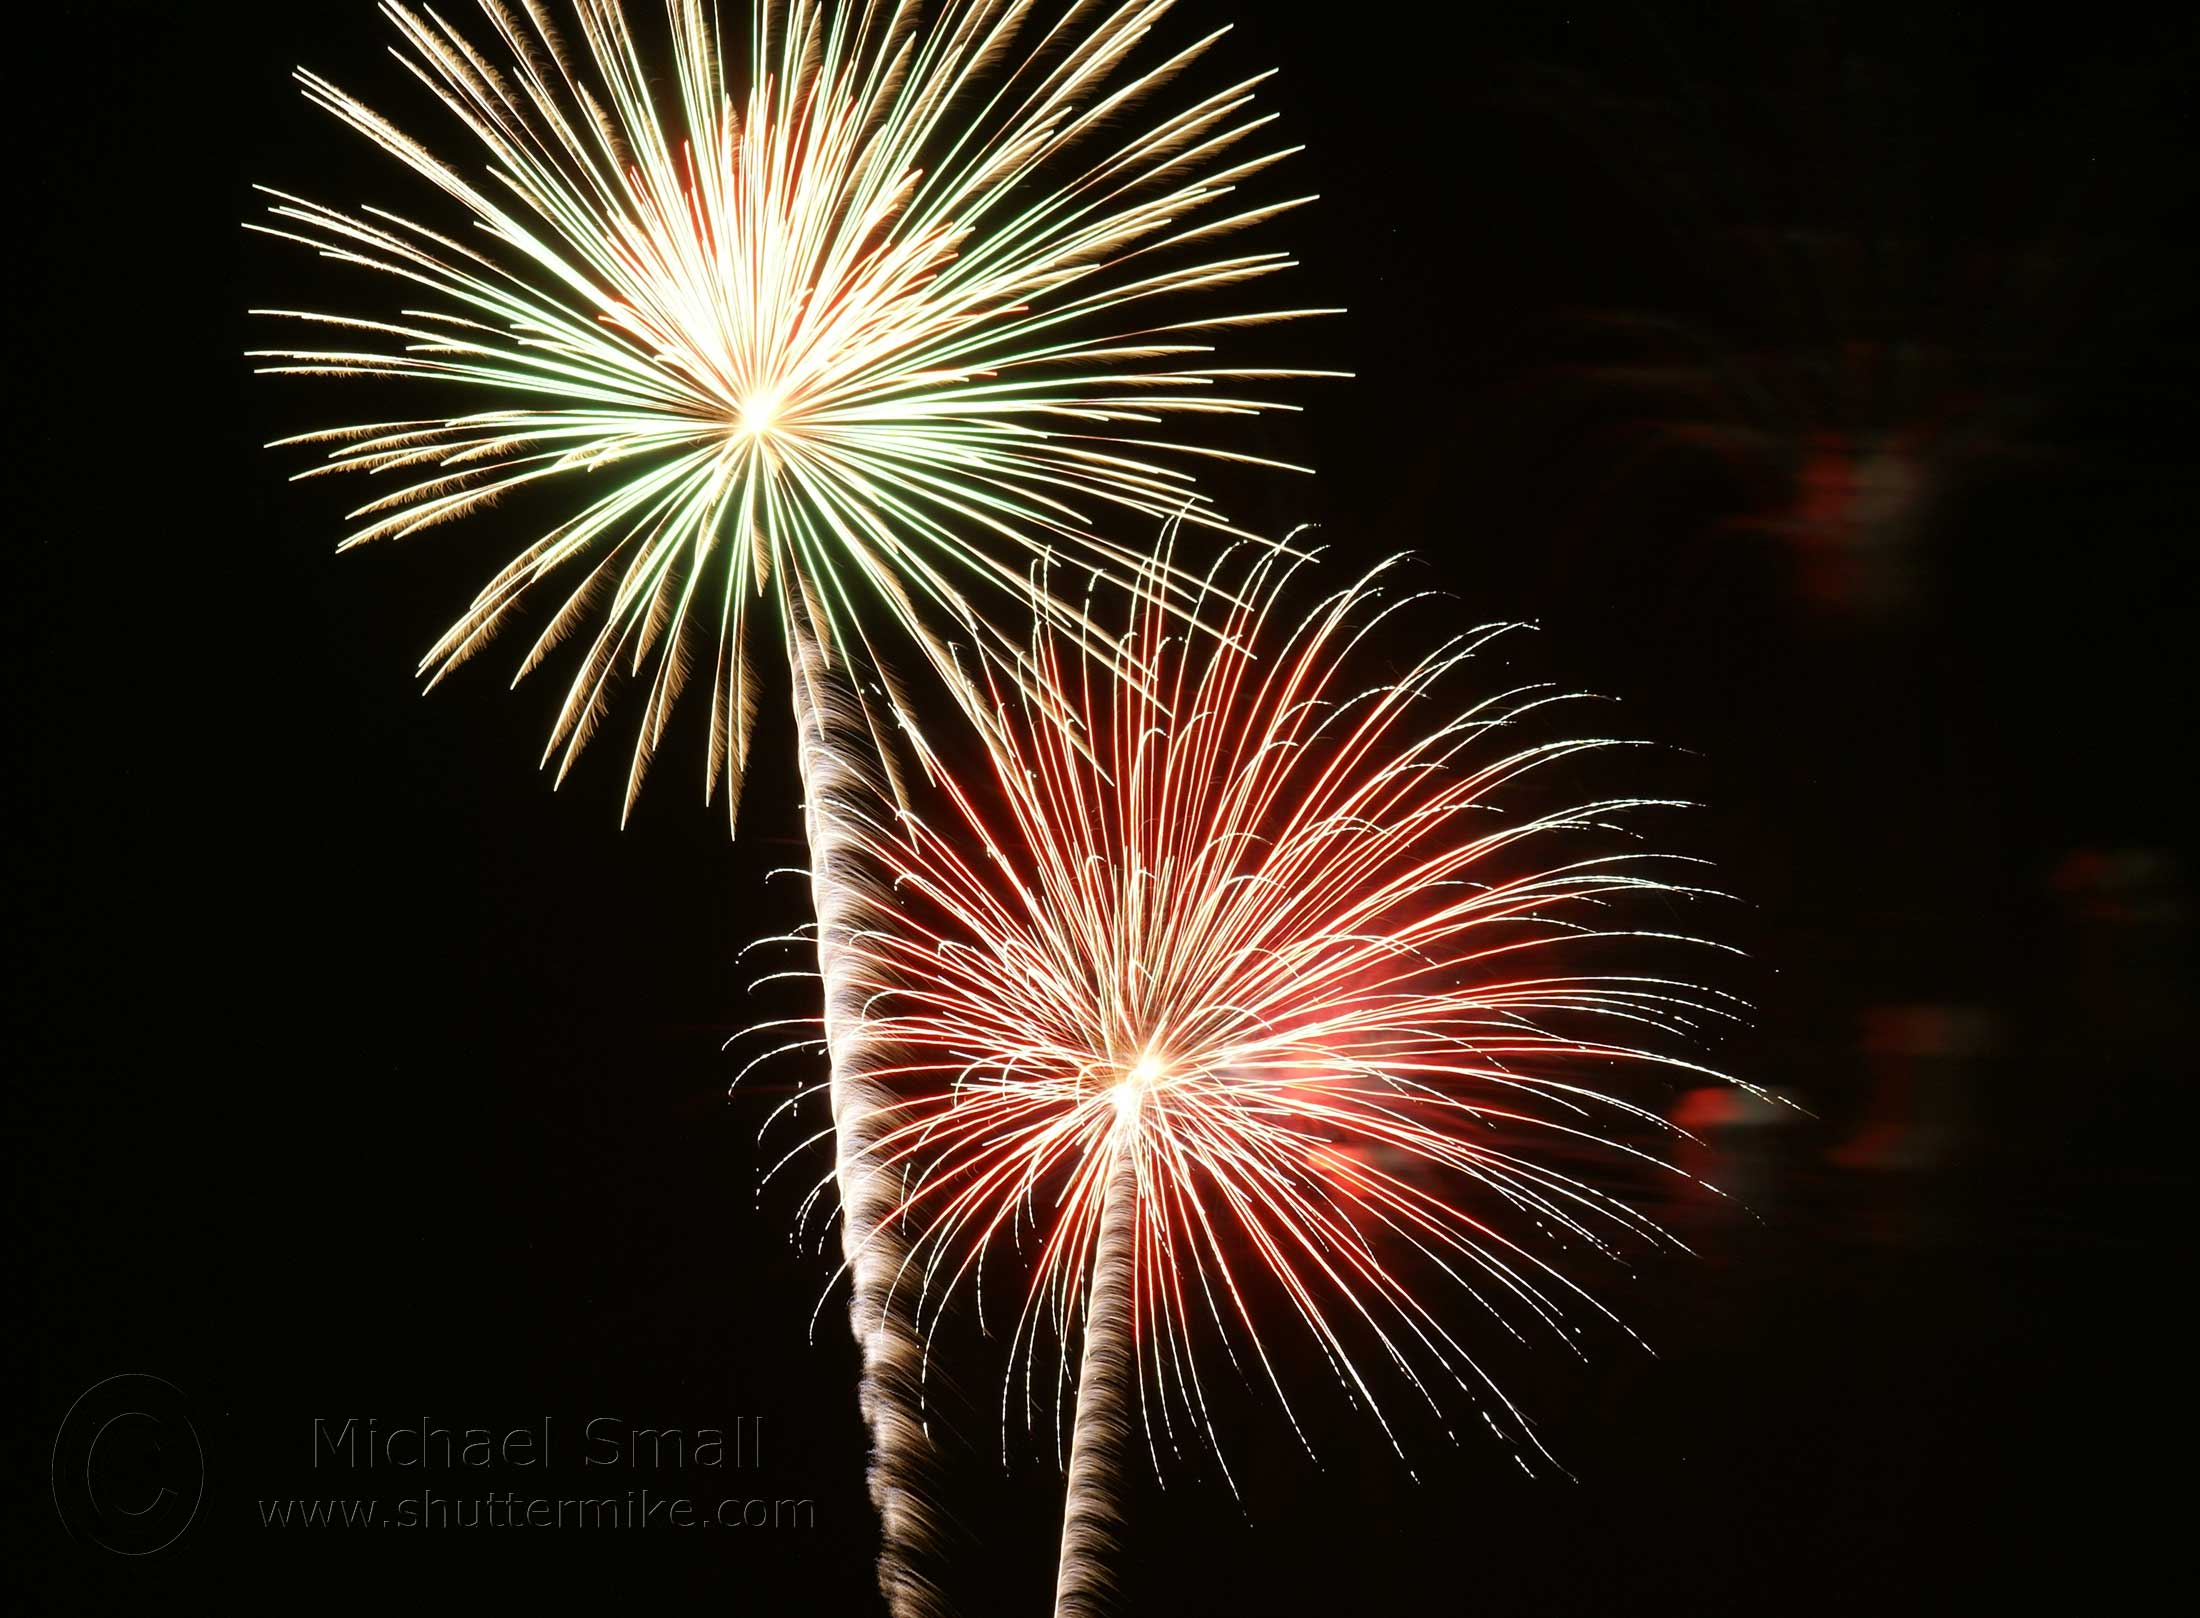 Fire works 2 photo